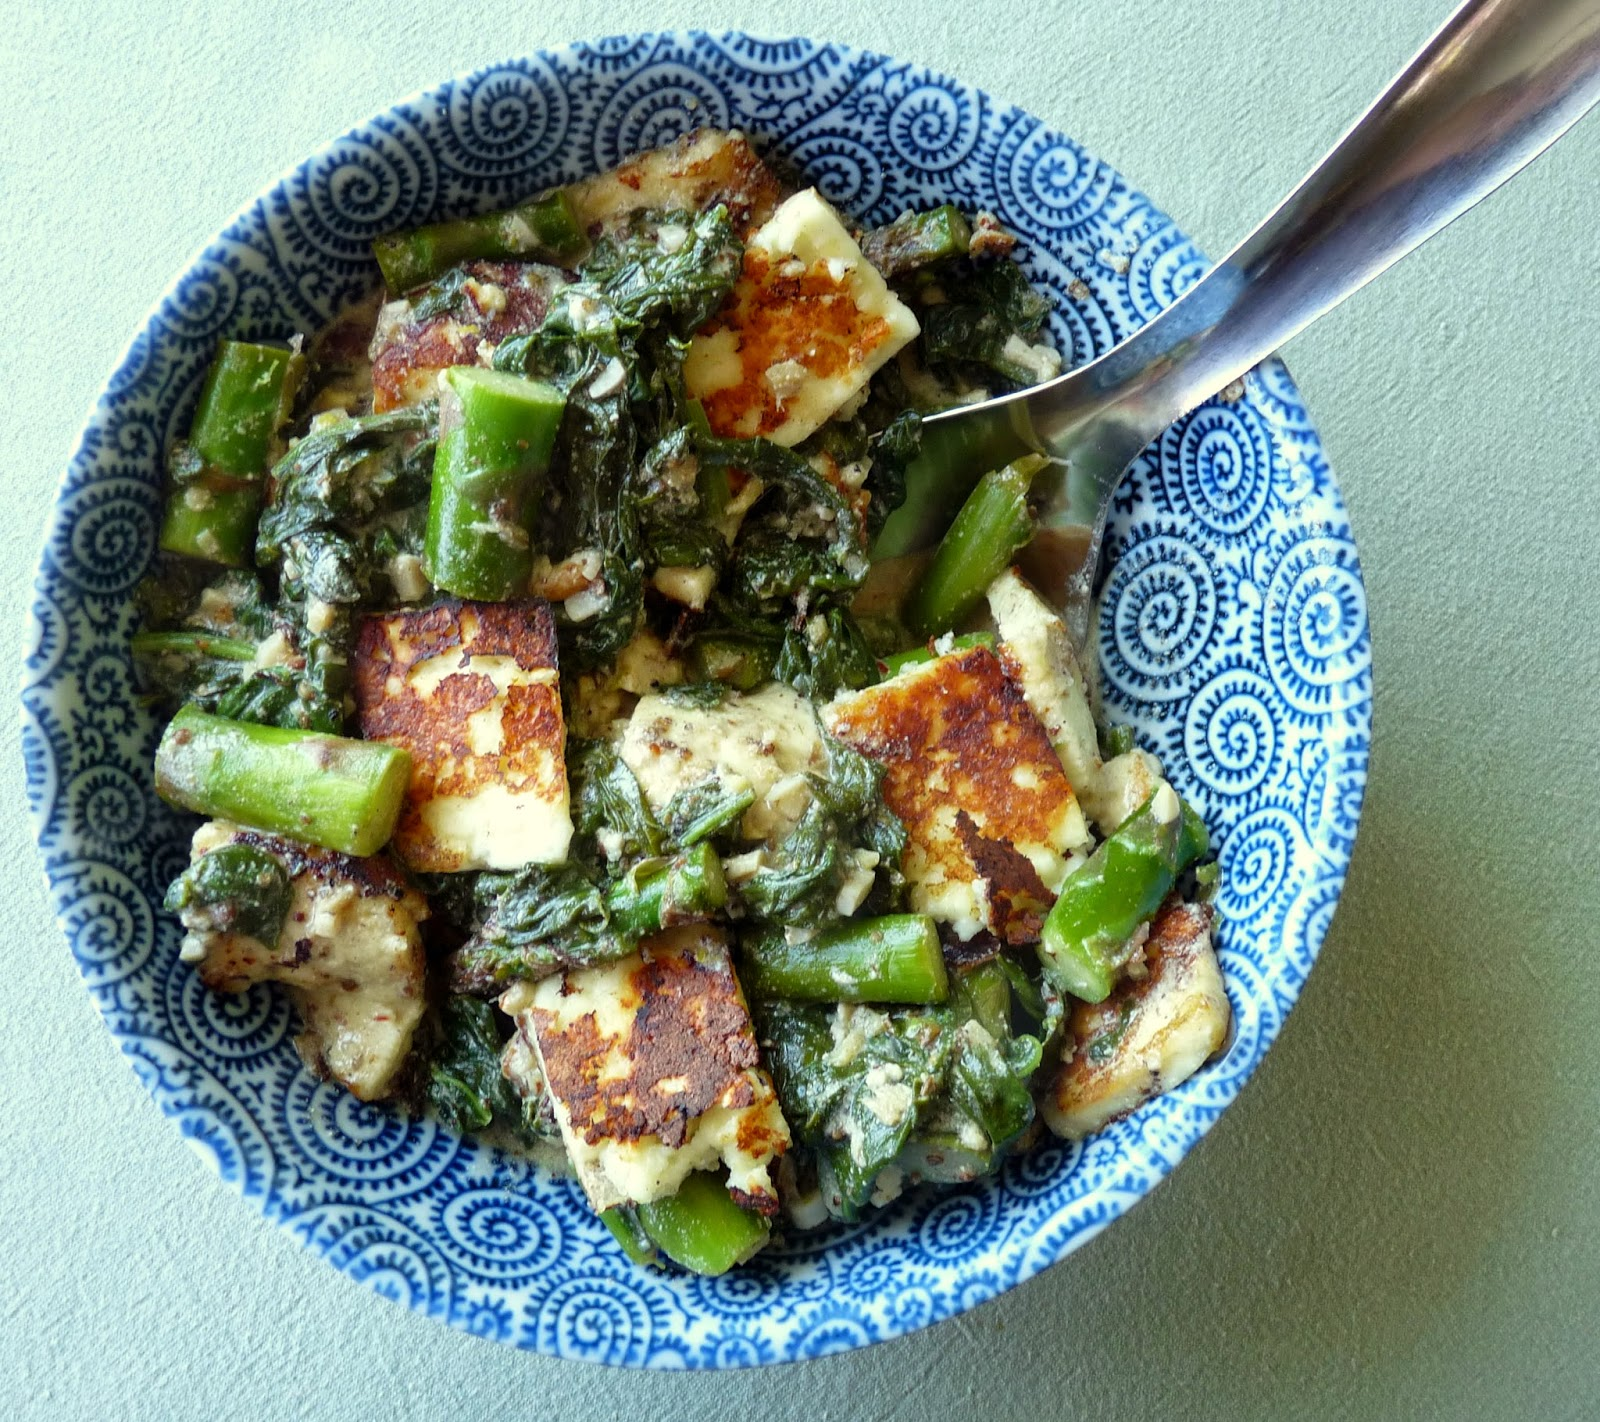 Spinach & Asparagus with Paneer